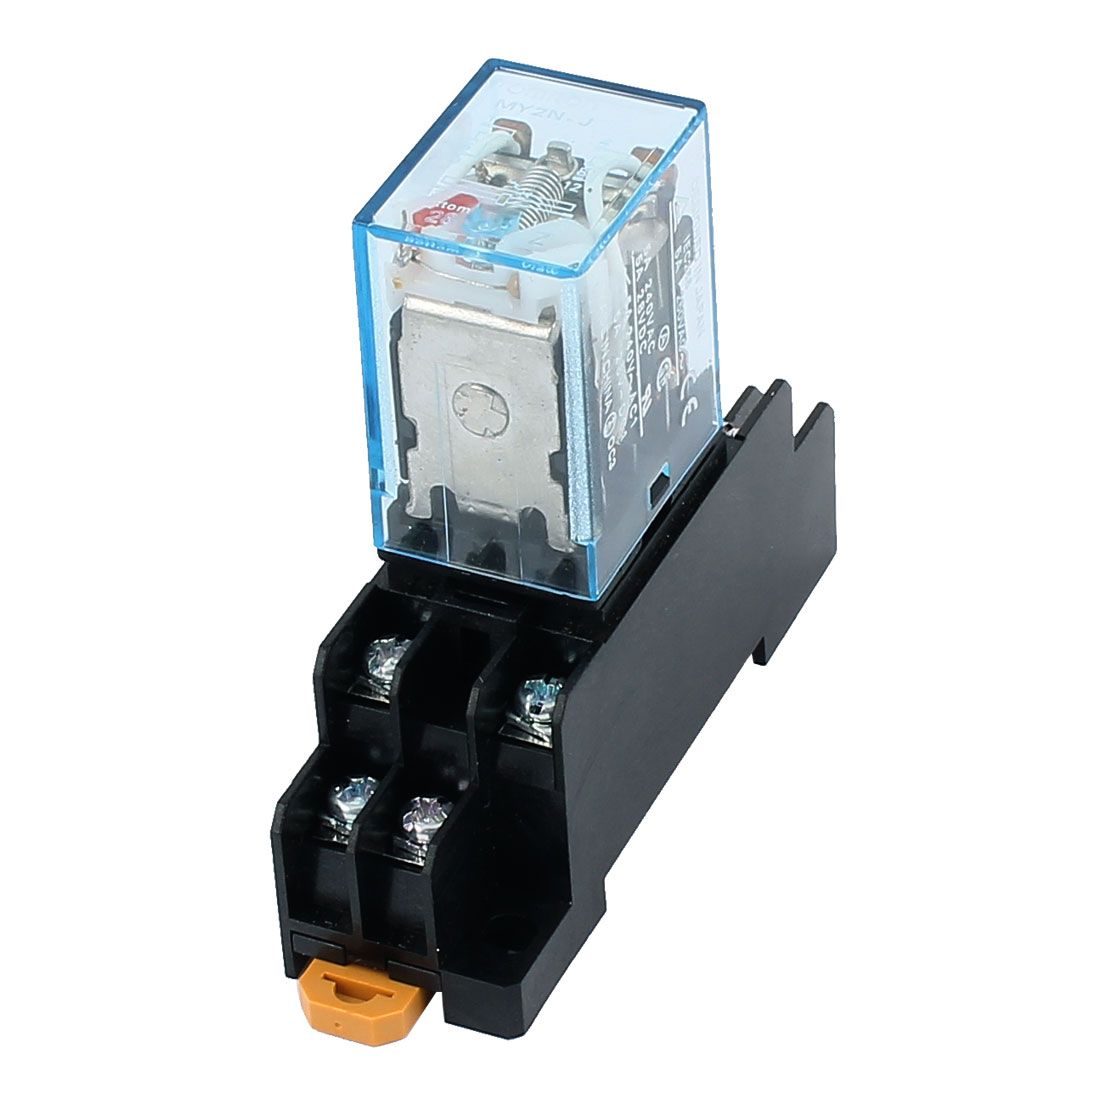 AC 24V Coil 8 Terminals DPDT DIN Rail  Electromagnetic Power Relay w Base MY2N-J - image 1 de 4